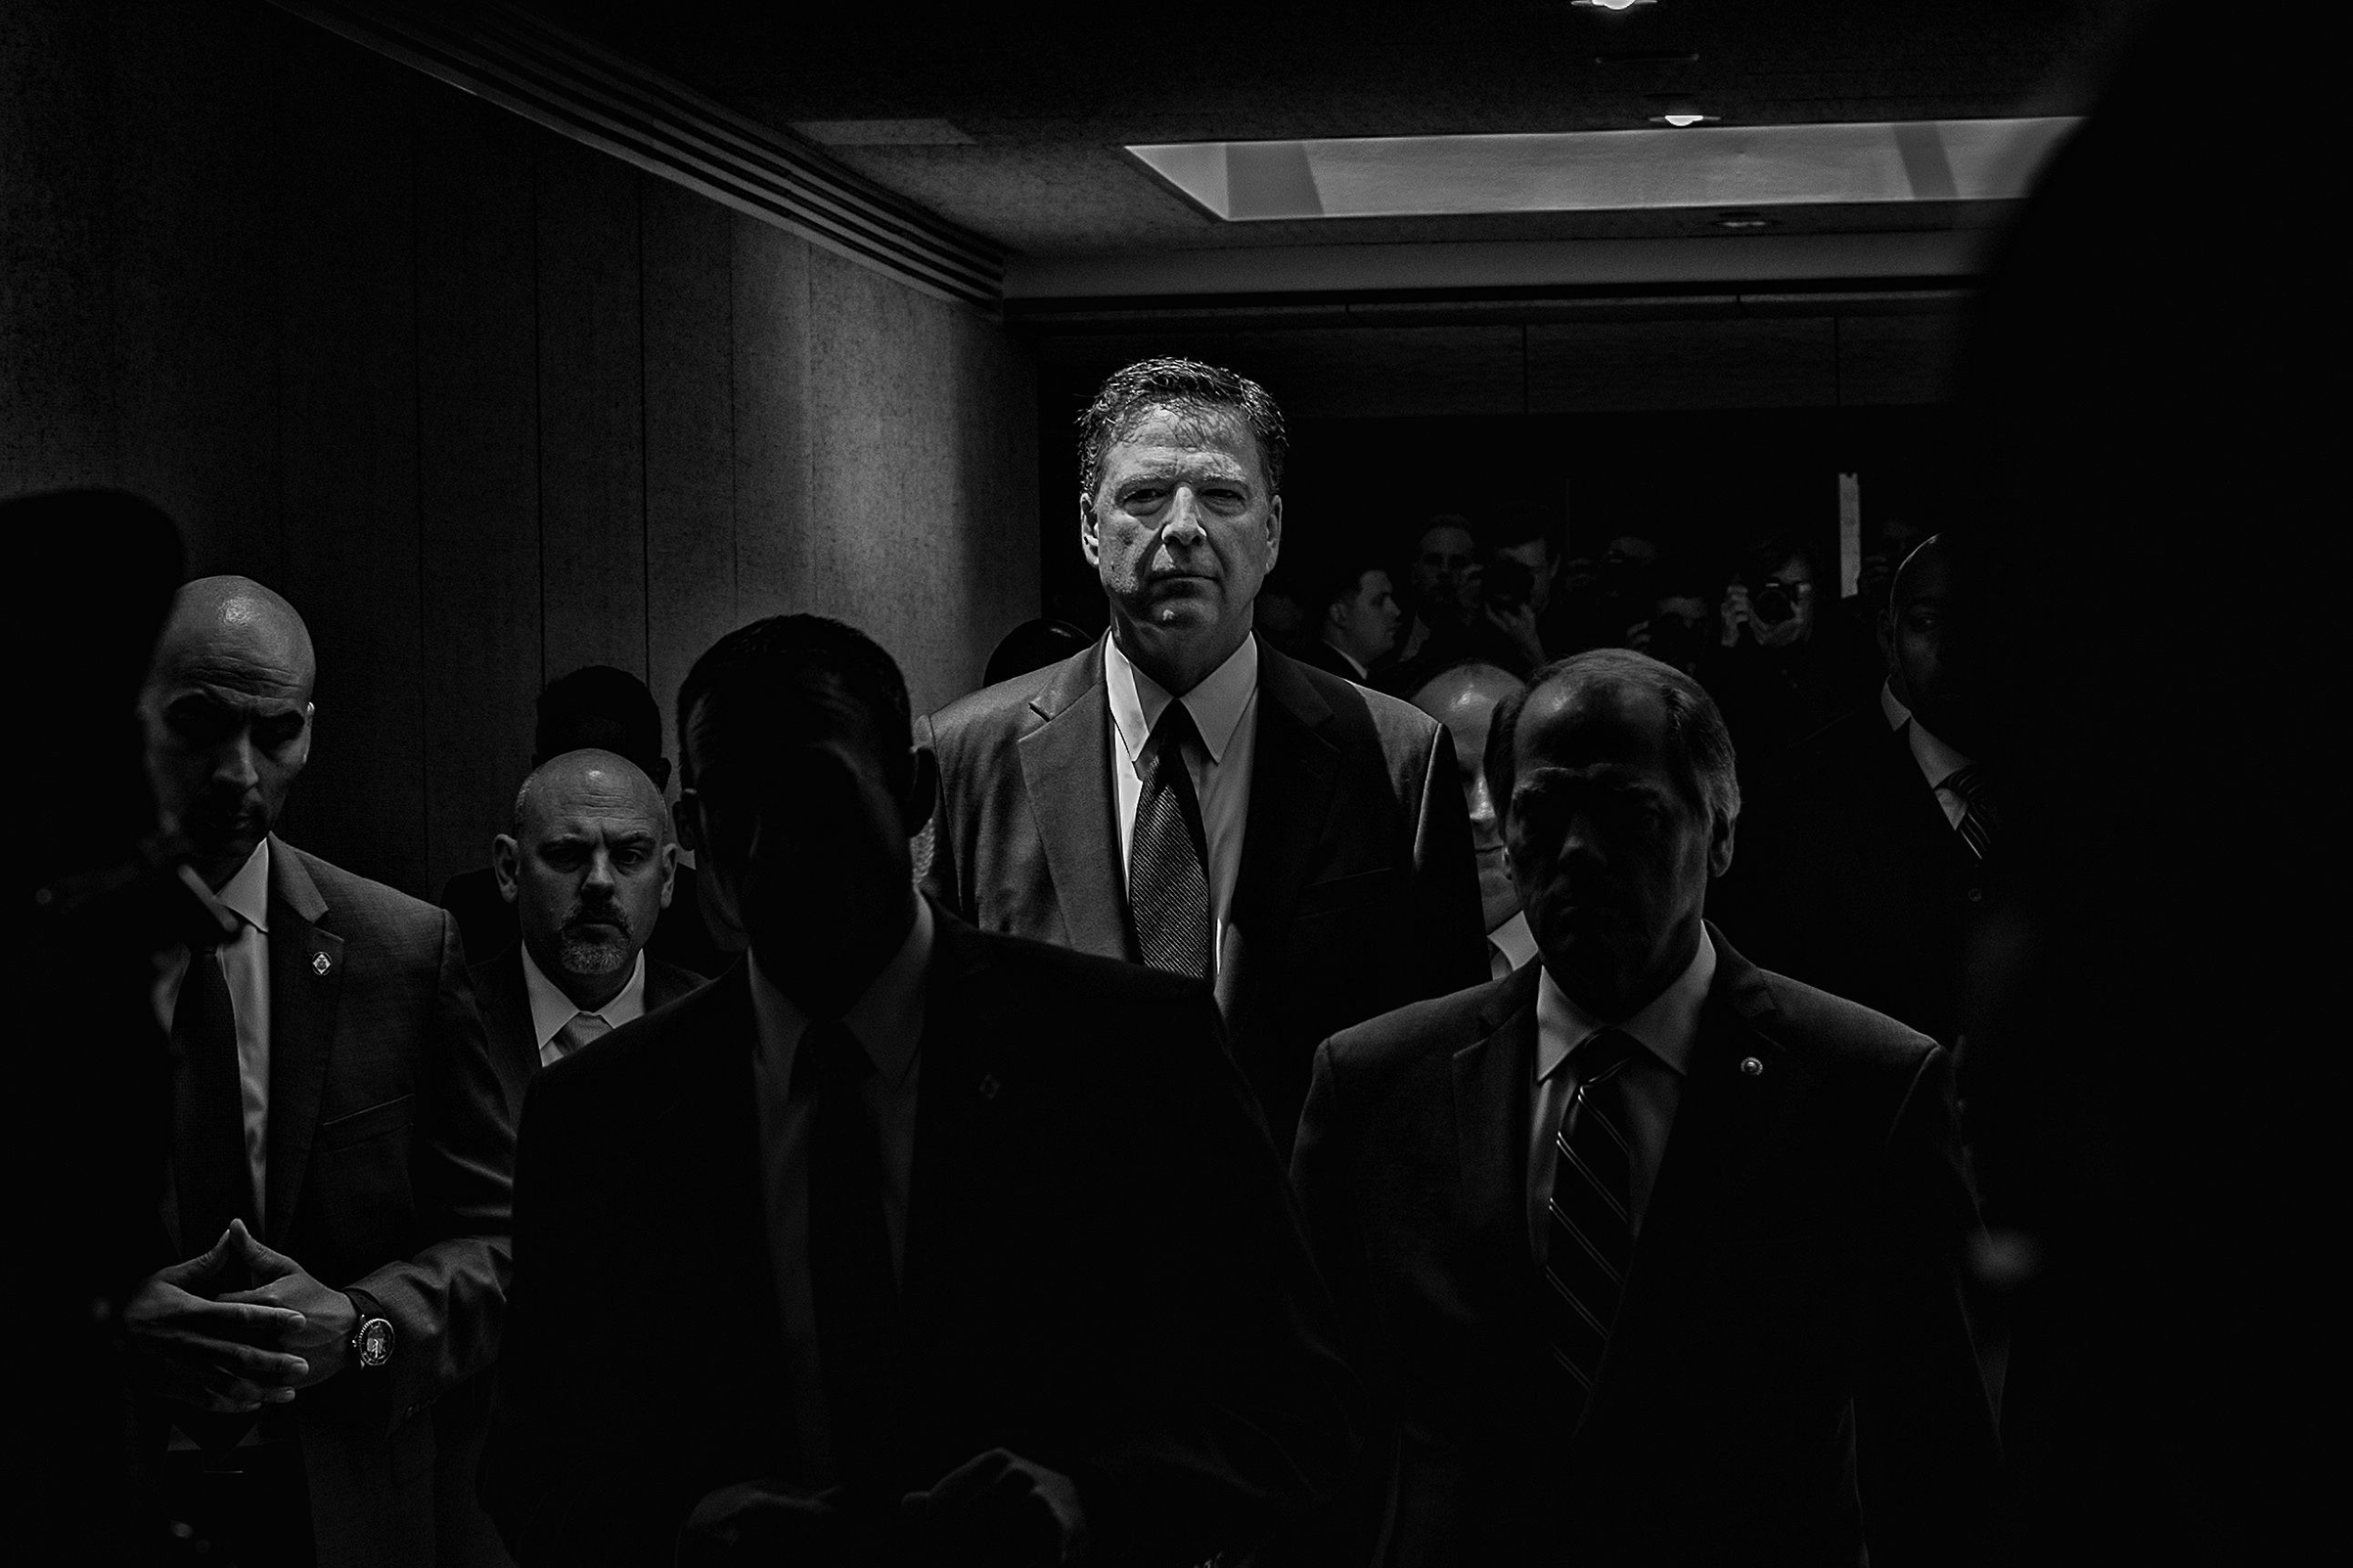 Former FBI Director James Comey leaves a Senate hearing on June 8, 2017, after testifying about Donald Trump